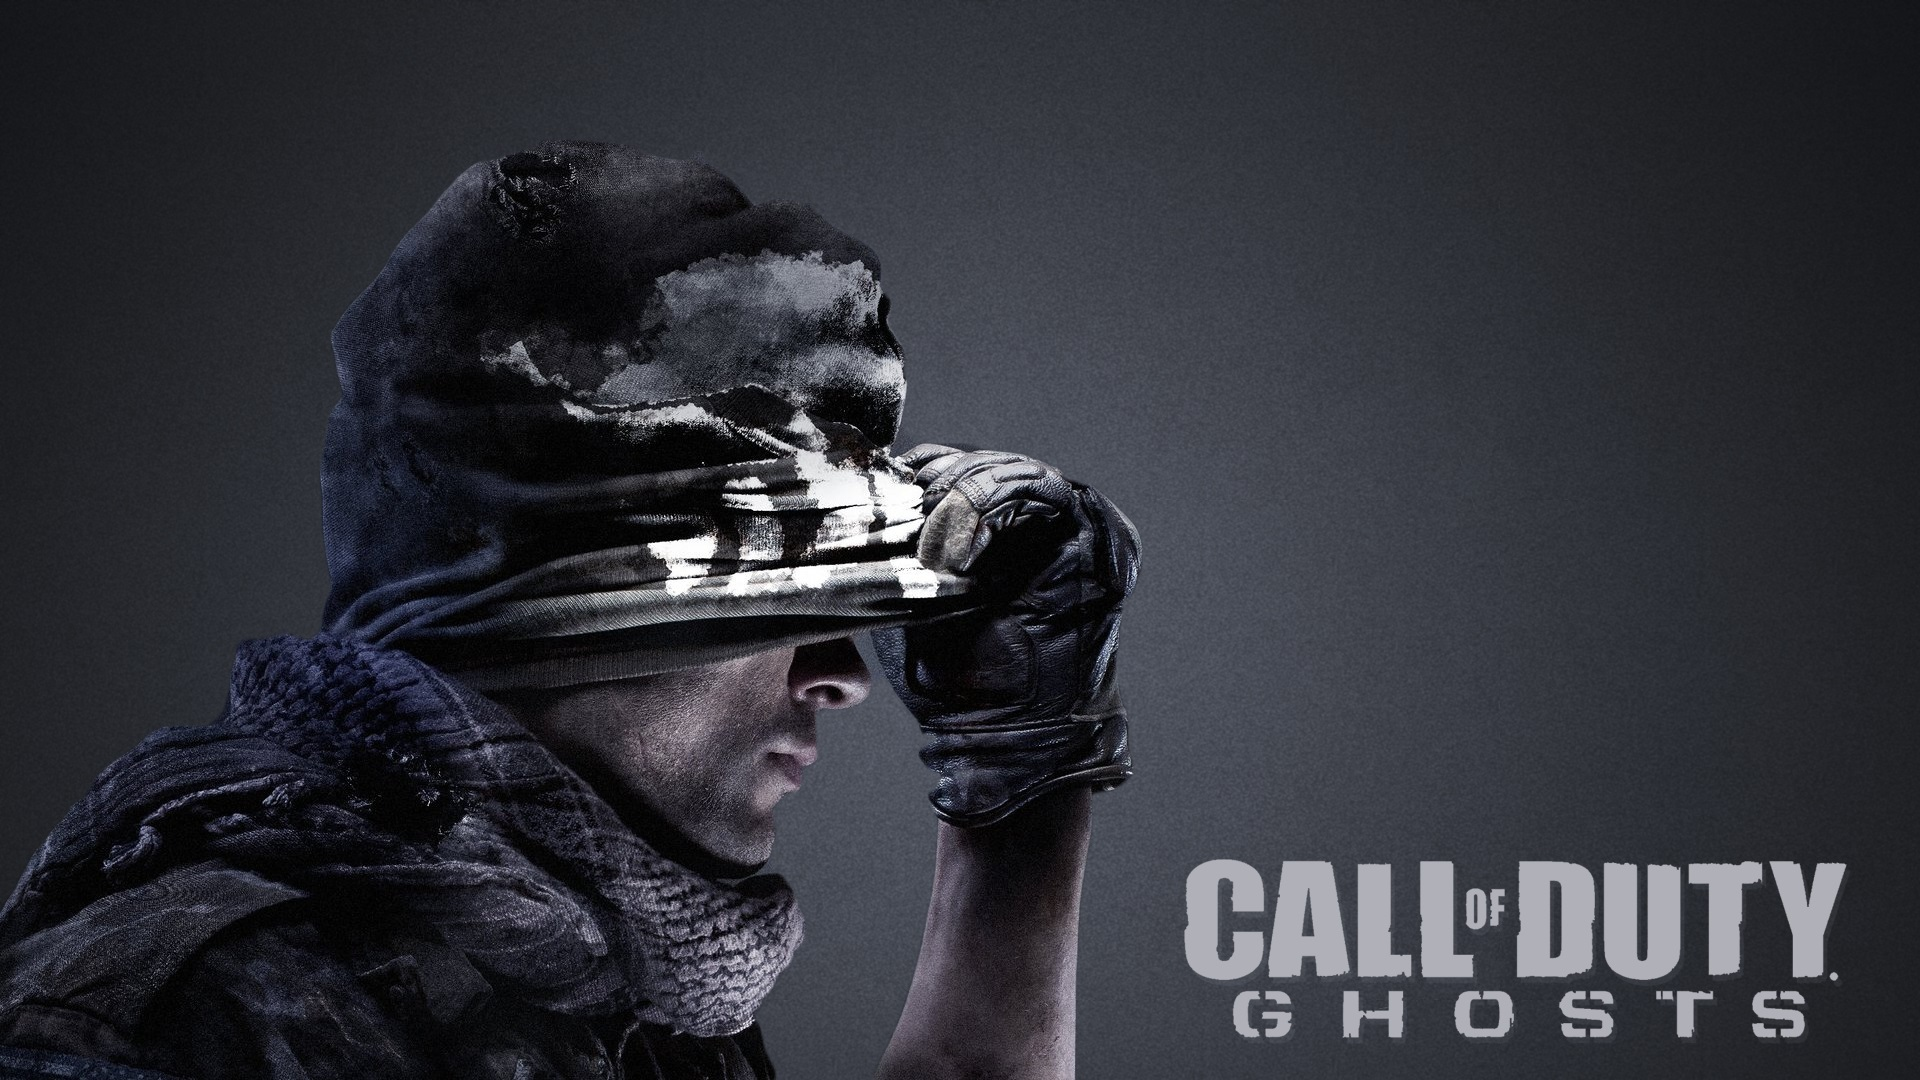 Free Download Call Of Duty Ghost Wallpaper 1920x1080 For Your